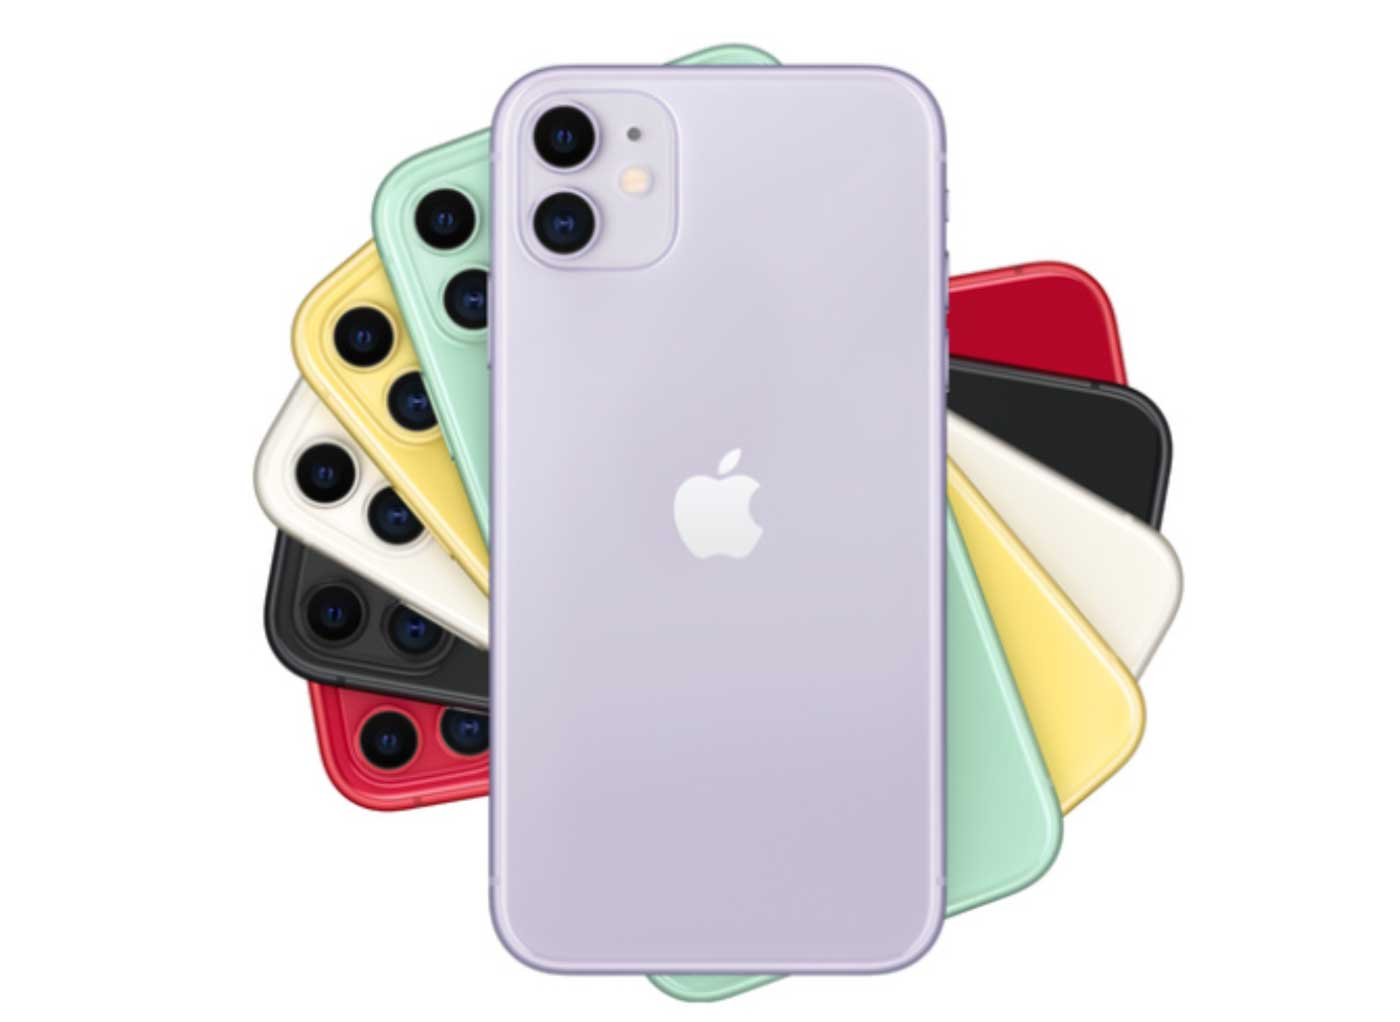 iPhone and other Apple products